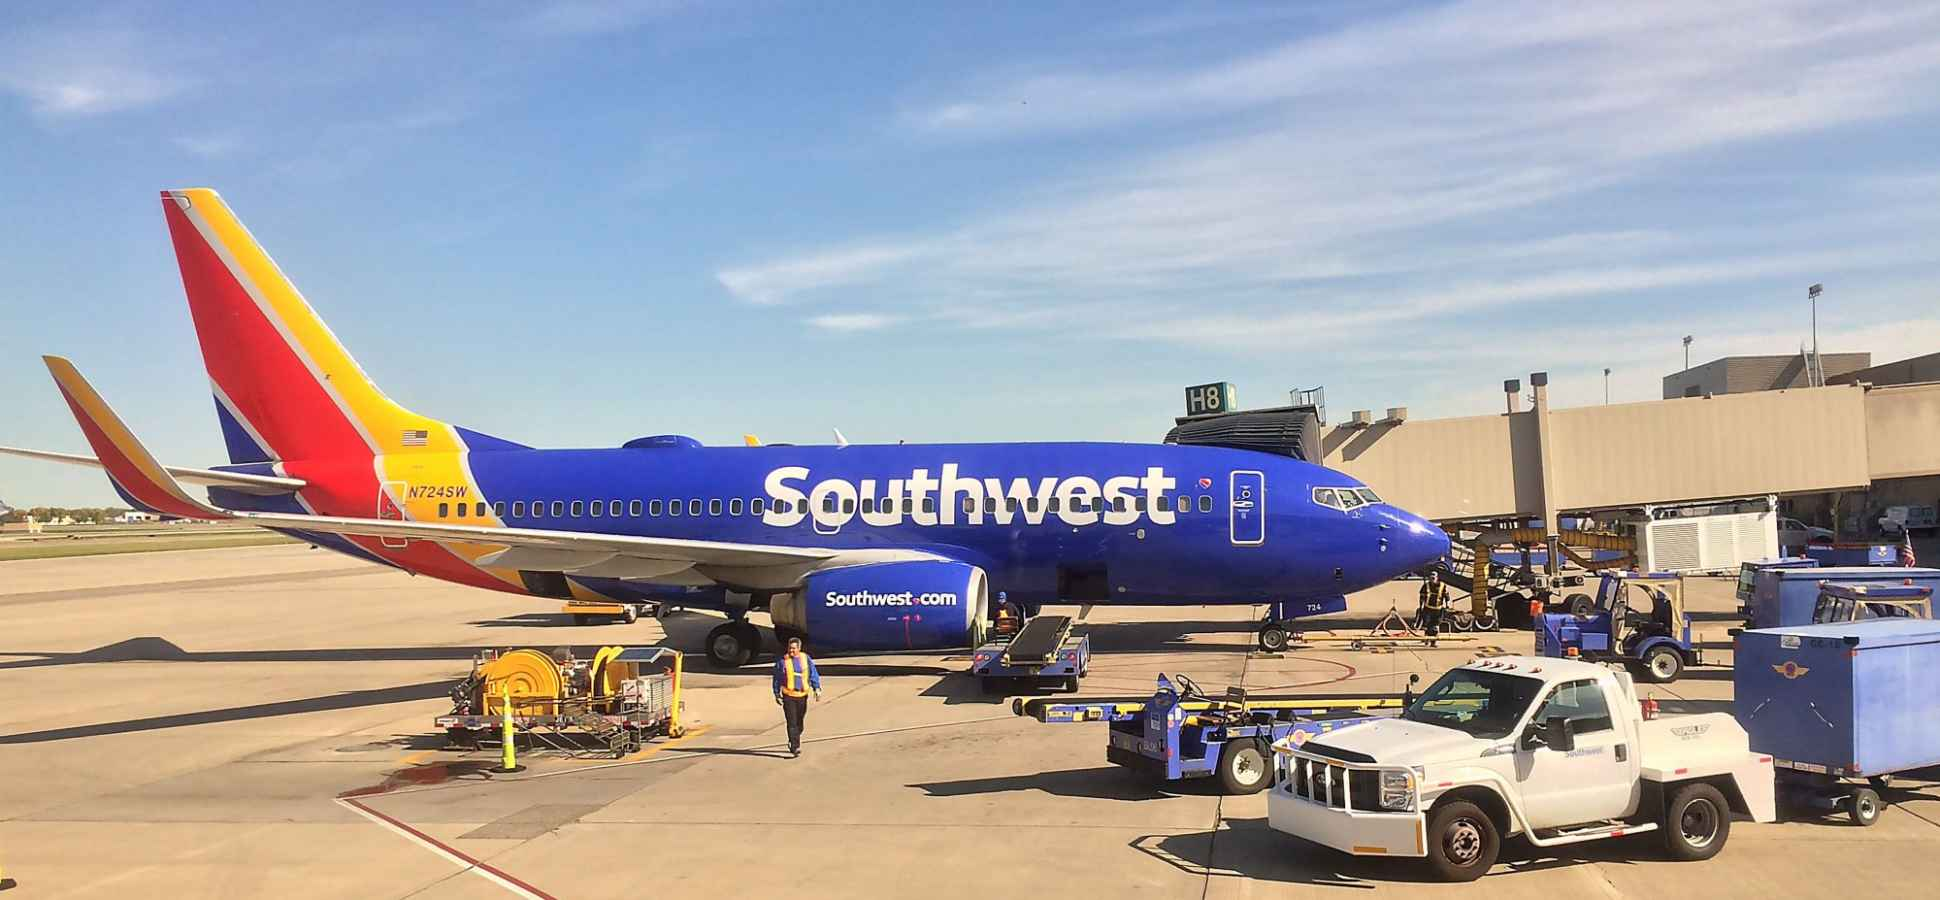 Southwest Just Made a Big Decision About Offering Basic Economy Fares (and It's Going to Upset Some People)